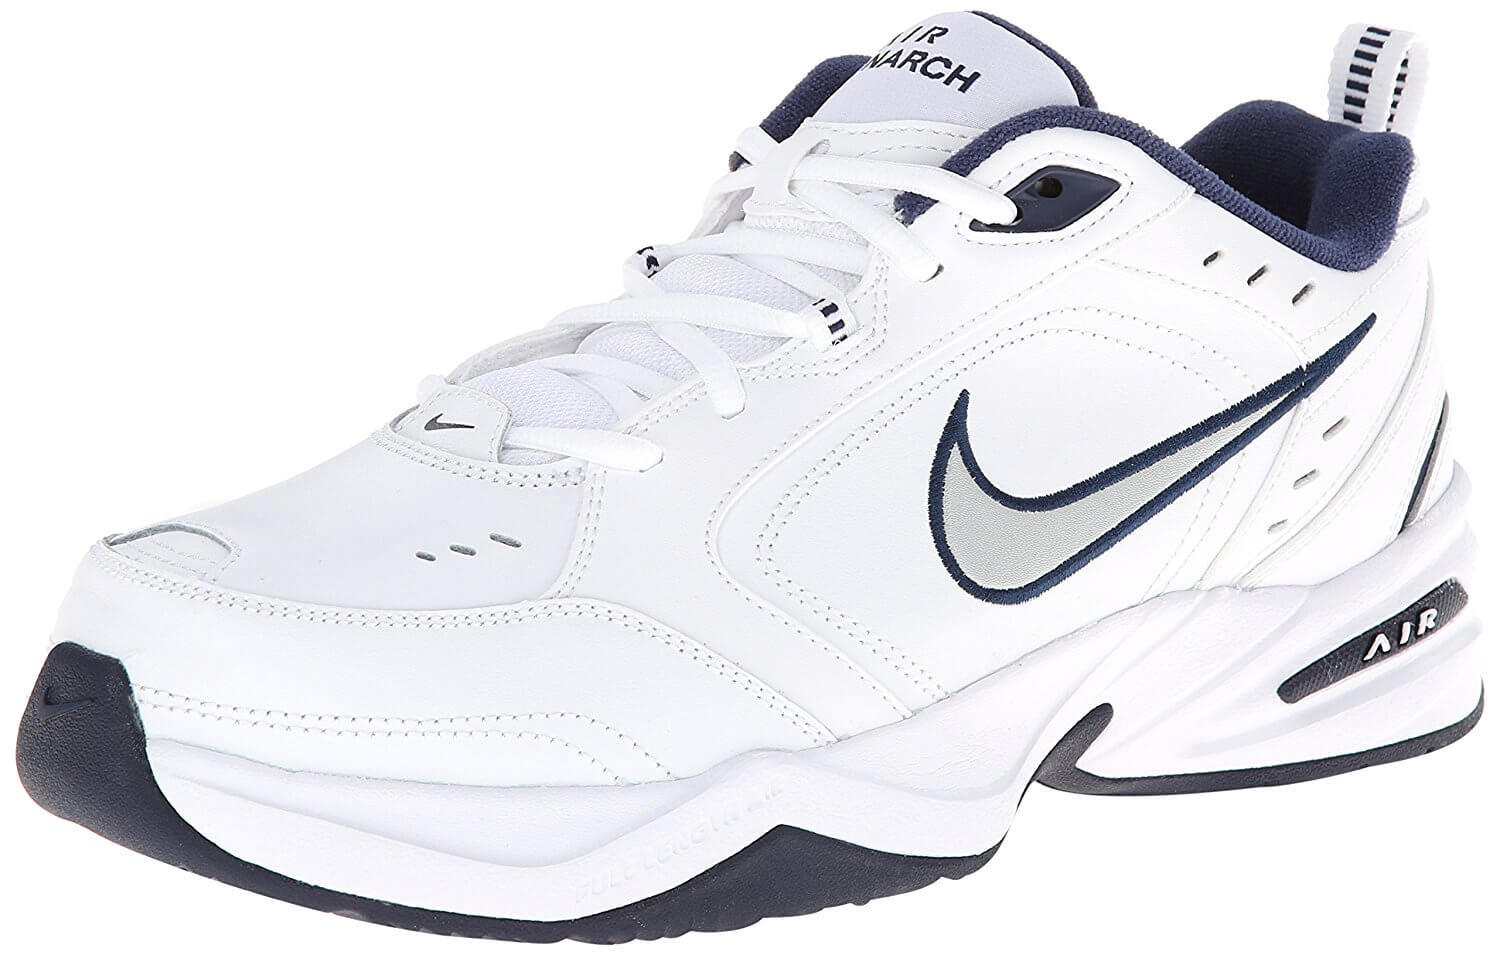 cce1aba09ba7a Nike Air Monarch IV Review - To Buy or Not in July 2019?